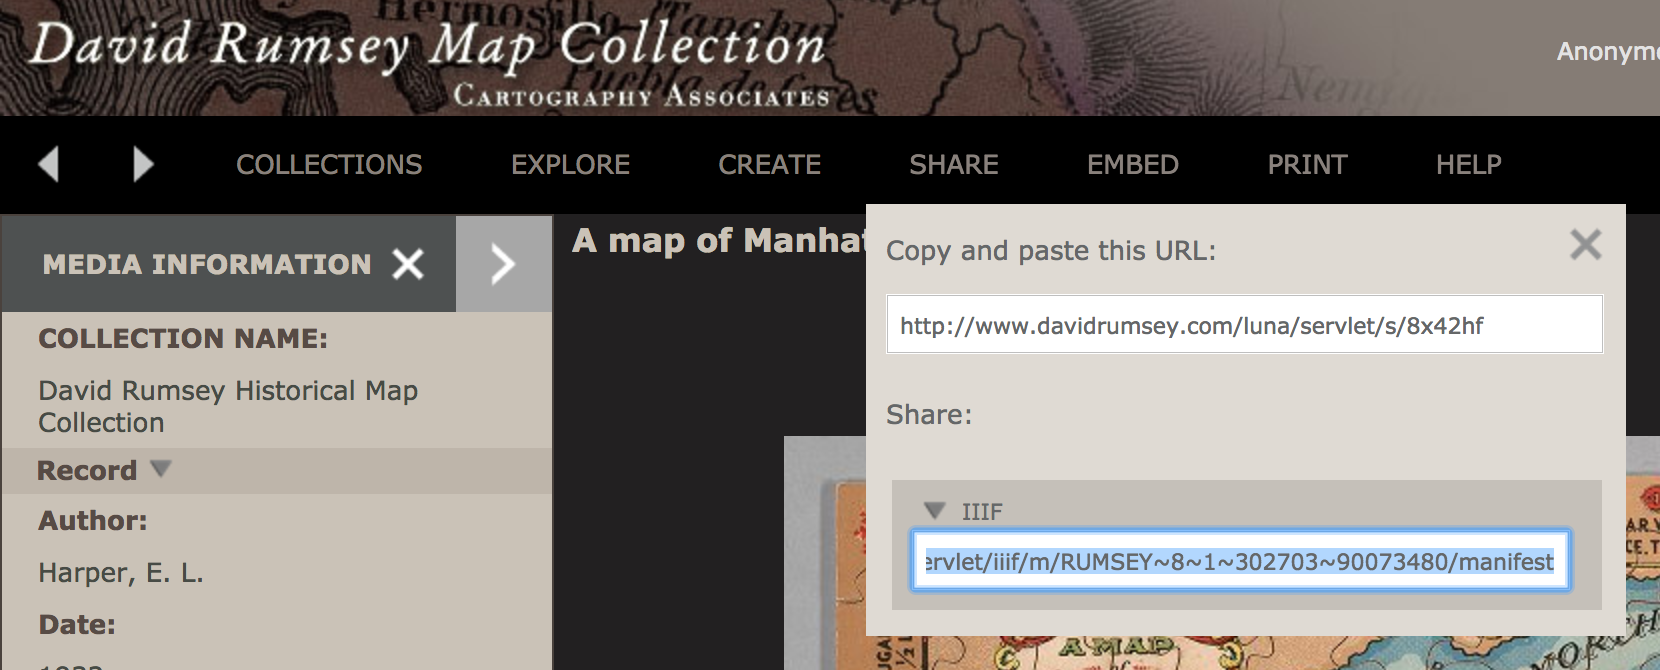 Image showing location of IIIF URL in David Rumsey Collection, under share, then IIIF